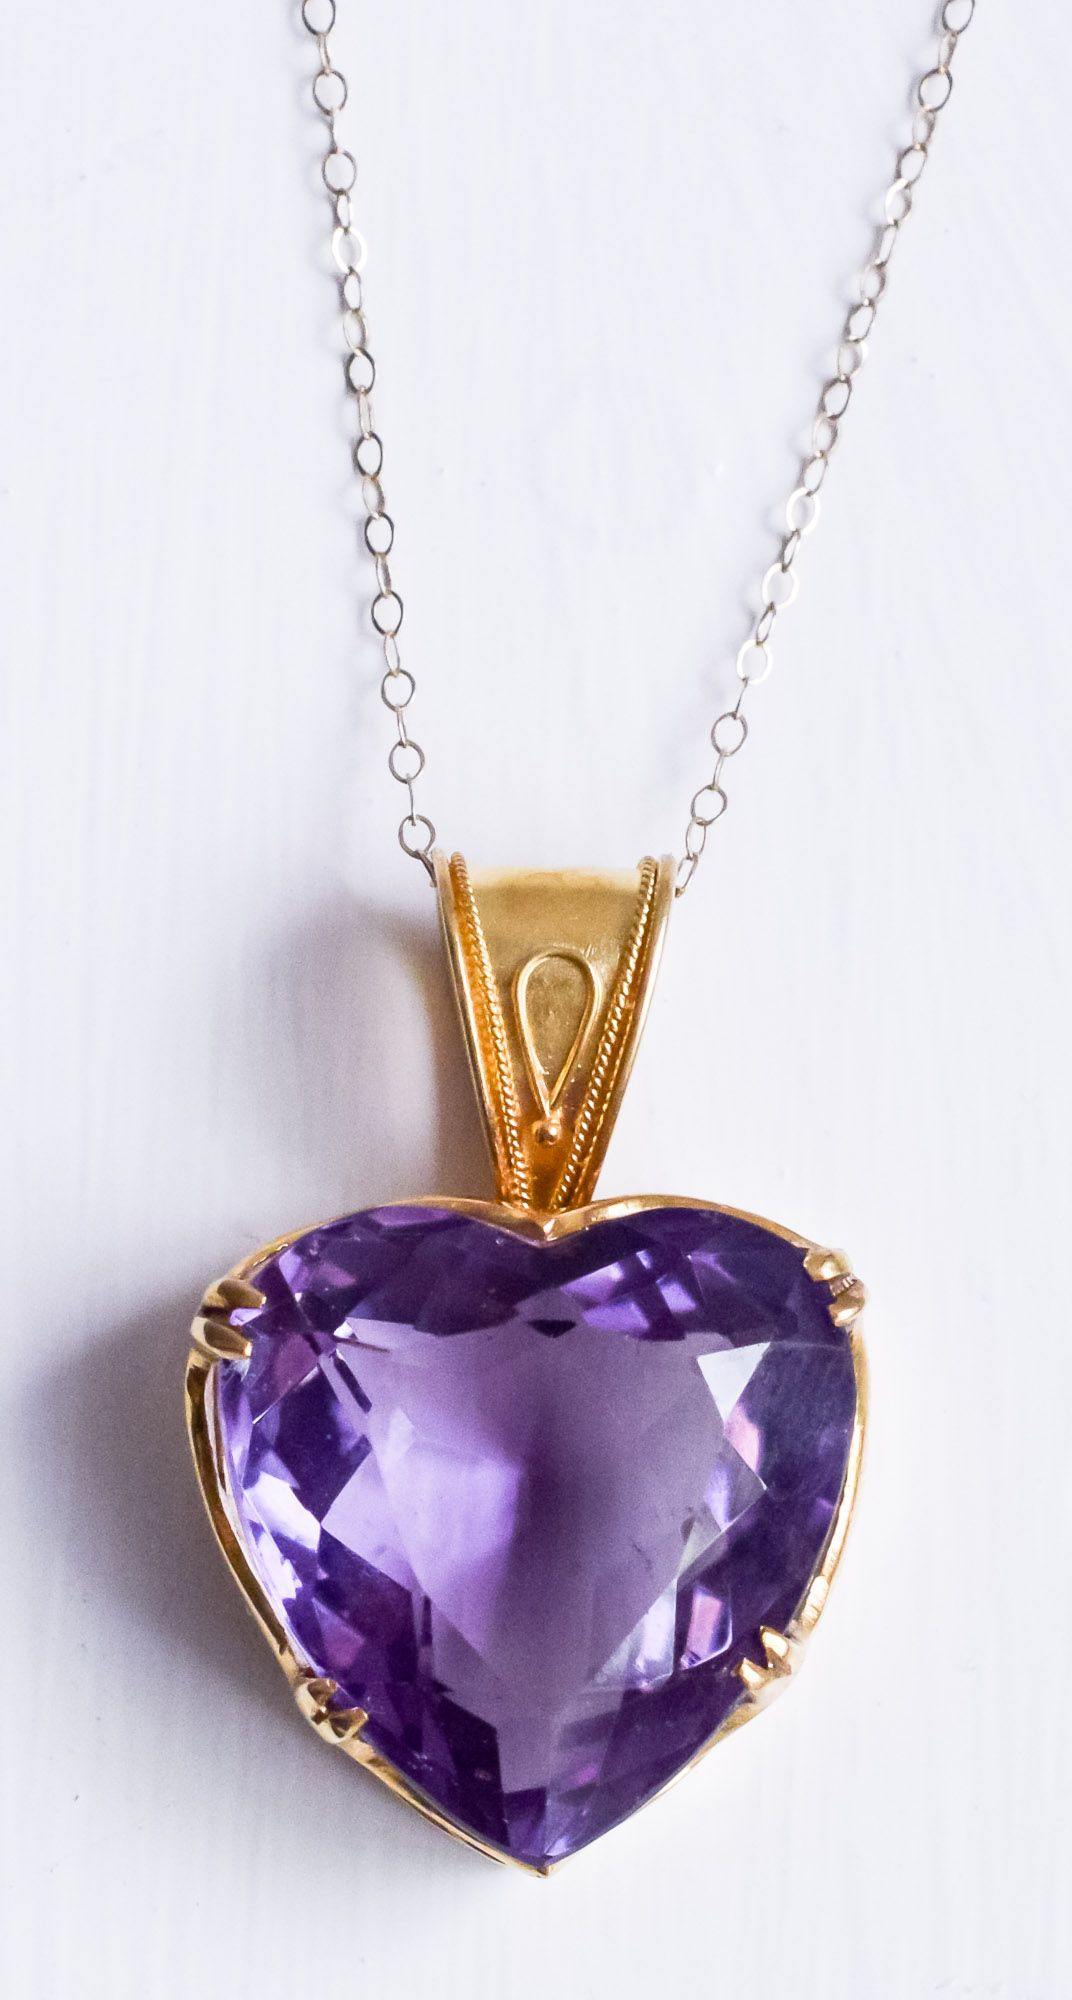 stone pendant agate necklace body neckalce jewellery eros purple heart and